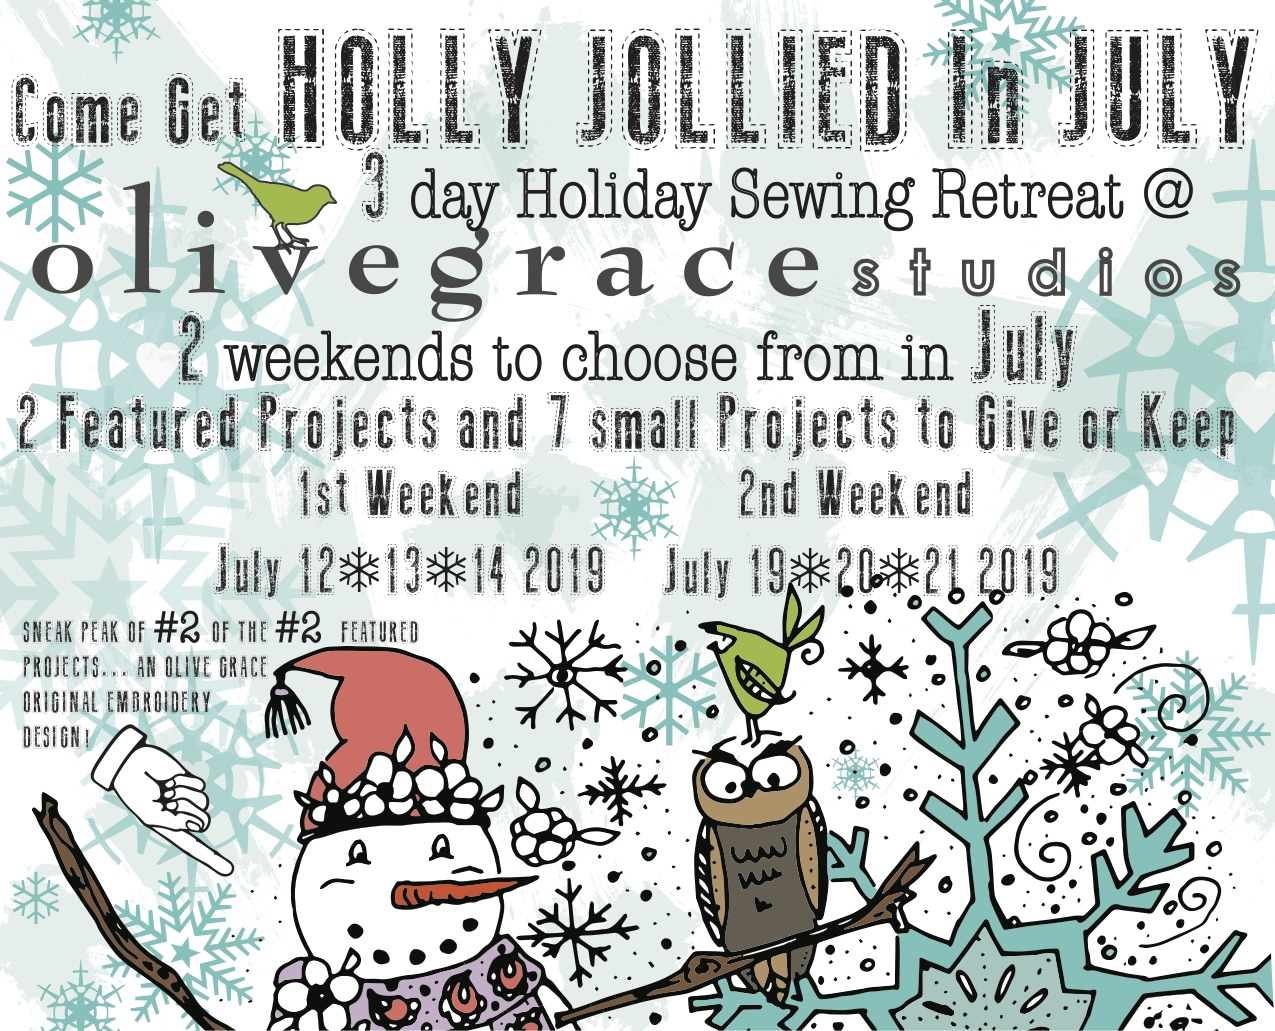 Holly Jollied Save the Dates.jpg